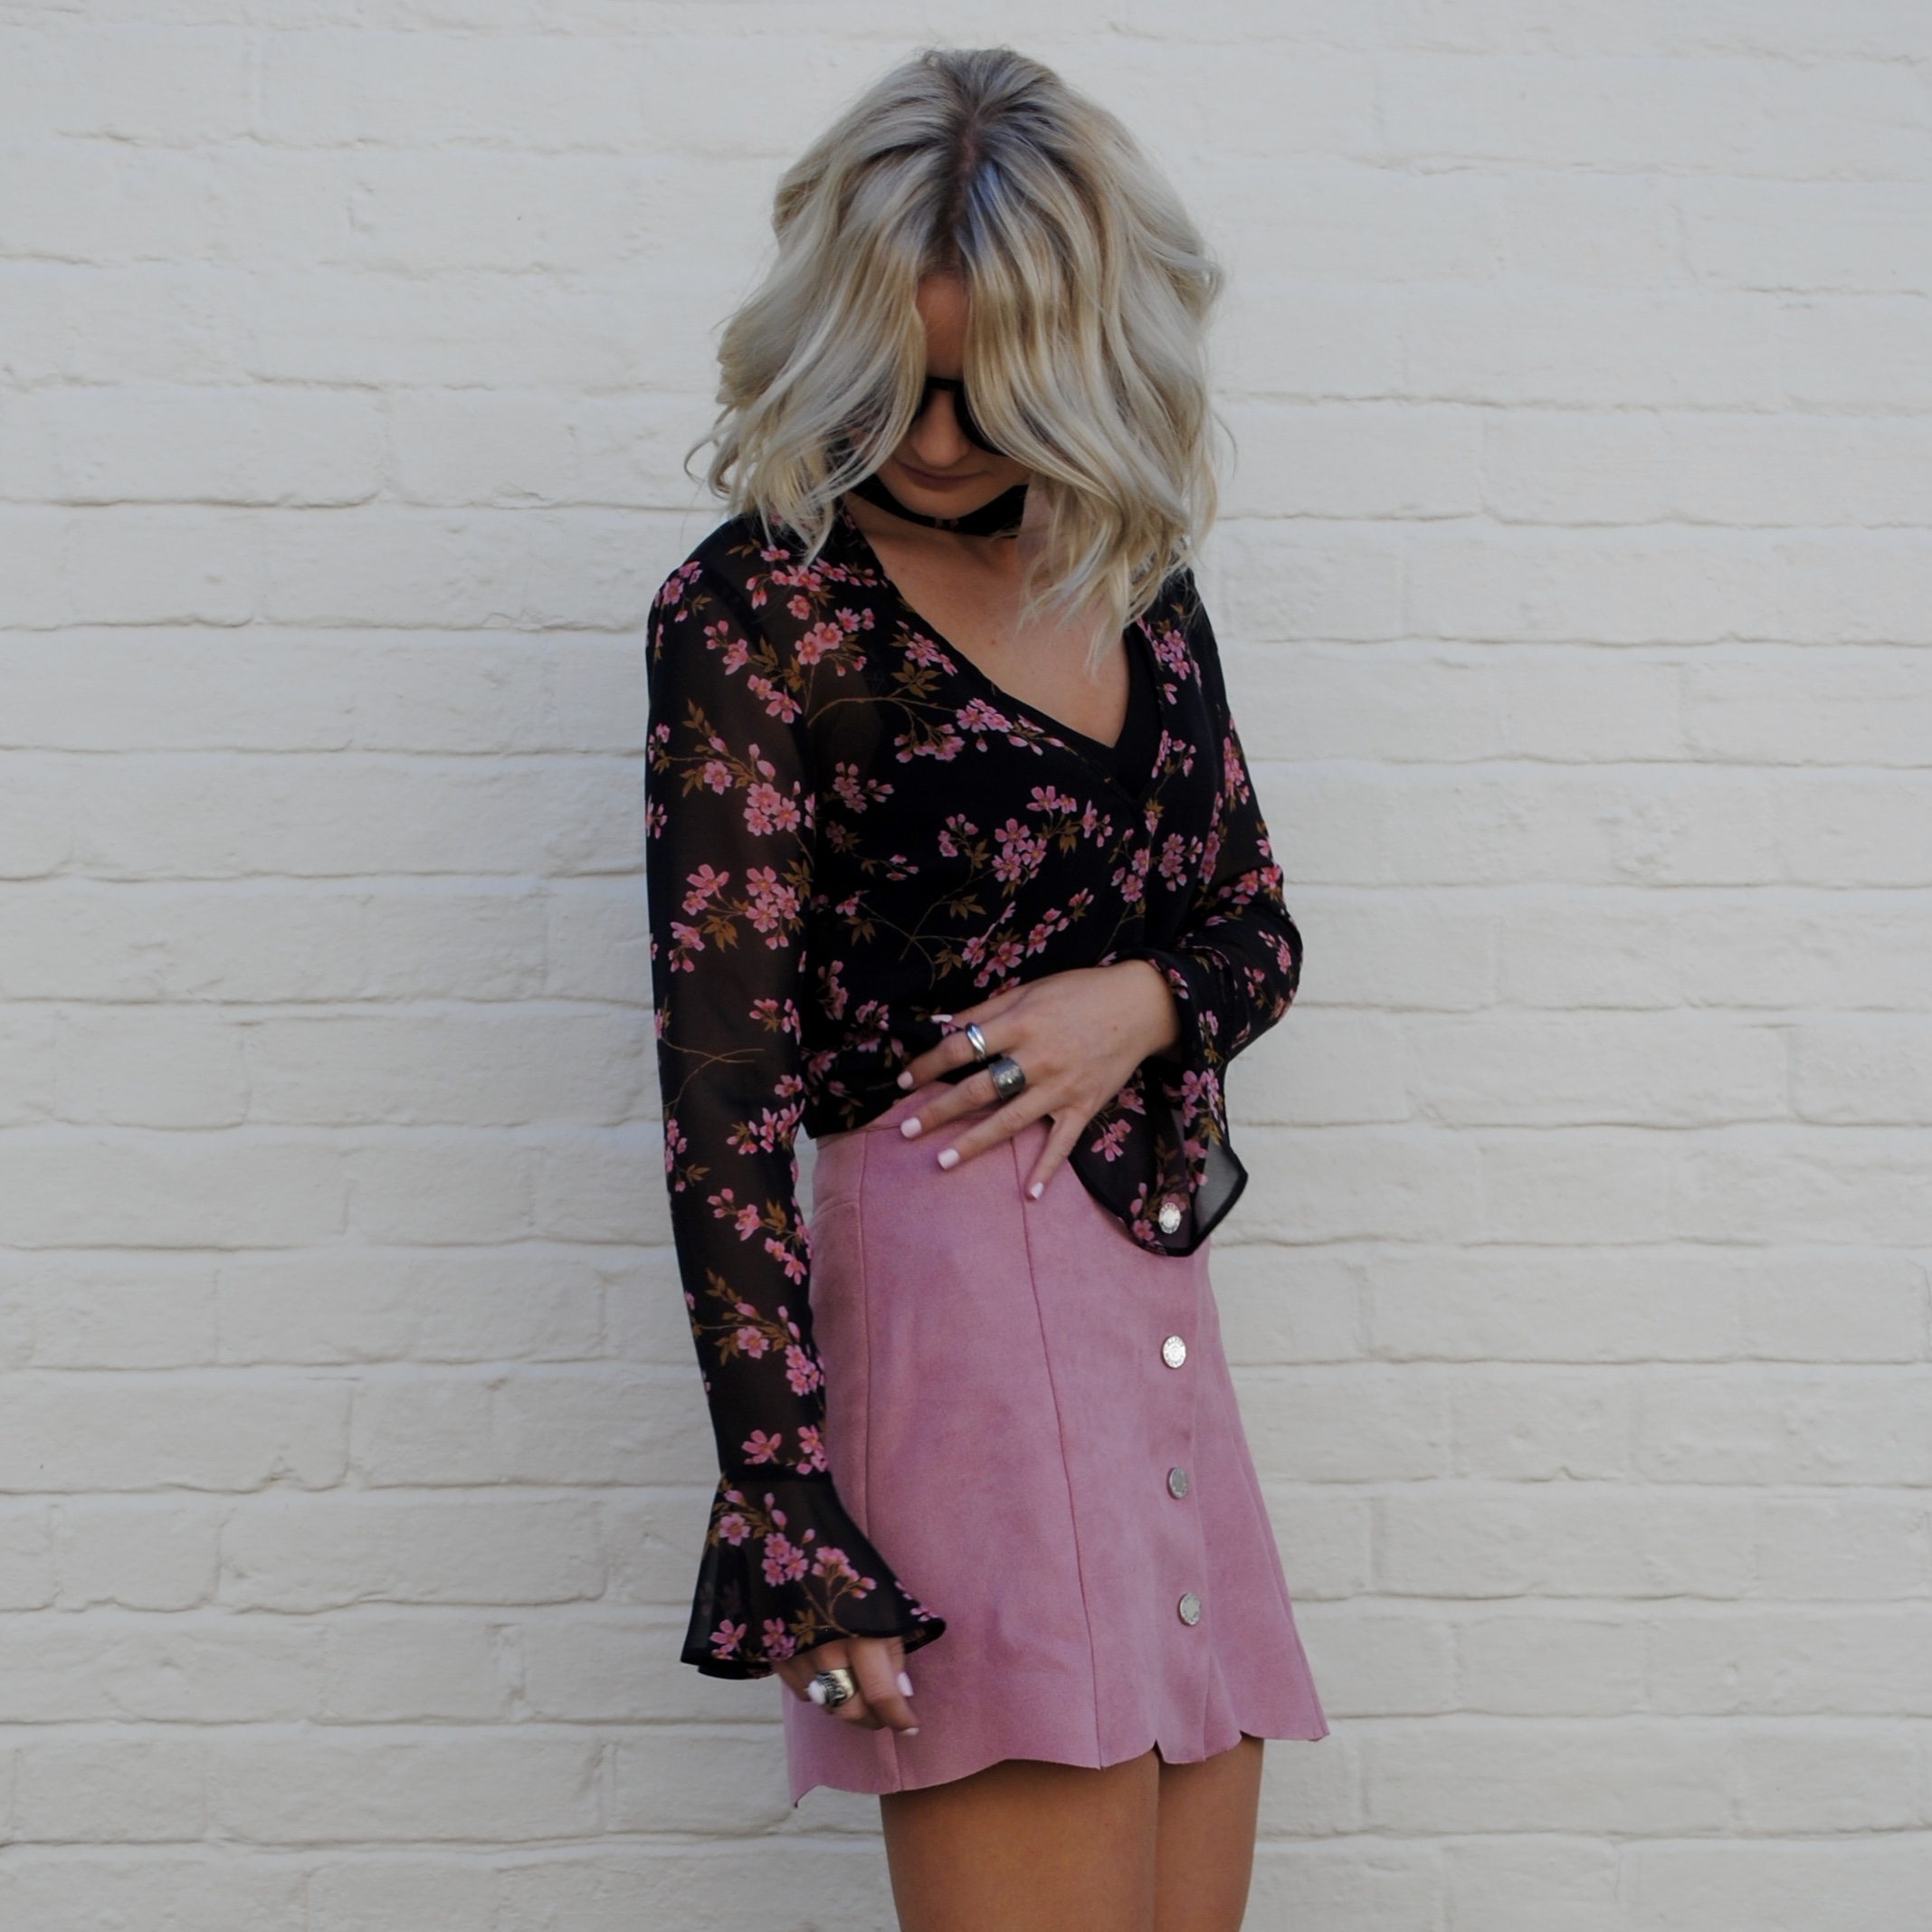 laura byrnes, lauras little locket, fashion blogger, st albans, lipsy style, pink suede skirt, black tie up heels, 4th and reckless shoes, flared sleeves